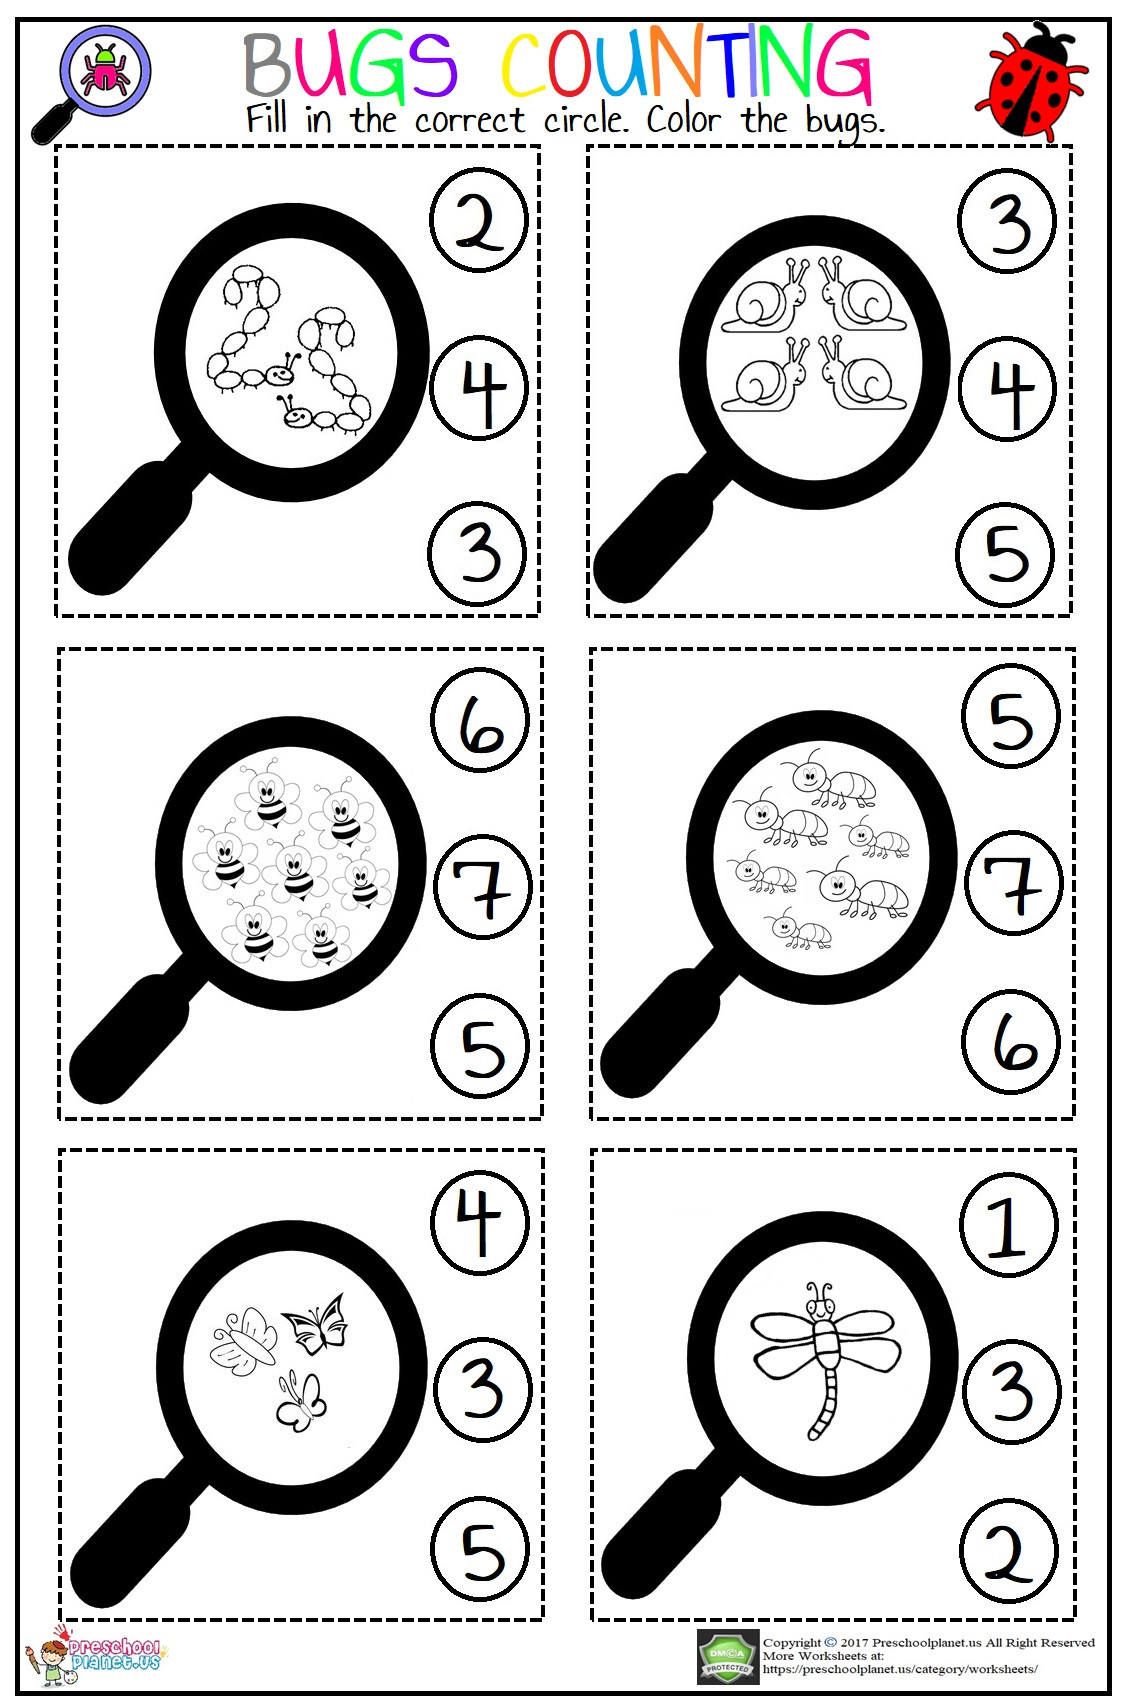 Preschool Bug Worksheets Bugs Counting Worksheet – Preschoolplanet